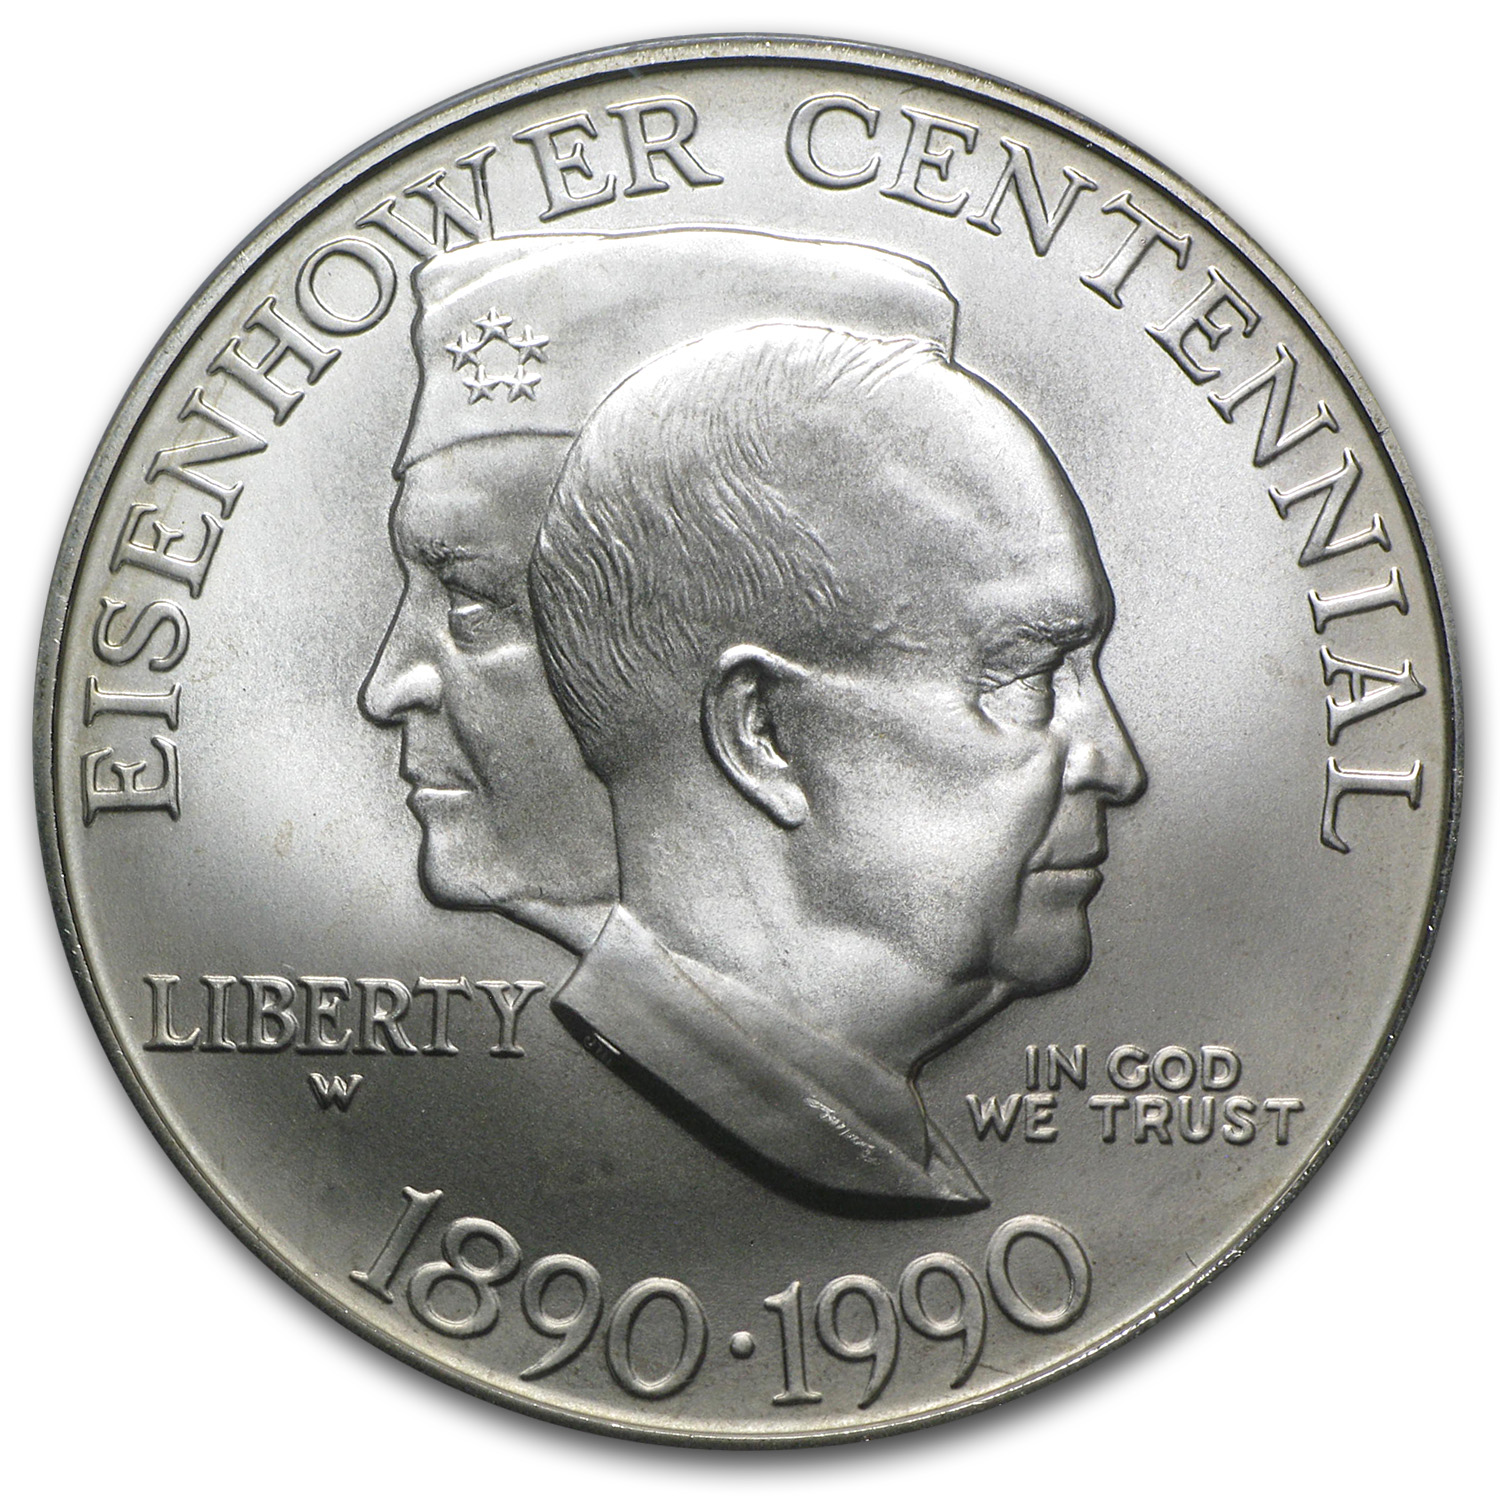 1990-W Eisenhower Centennial $1 Silver Commemorative MS-69 PCGS